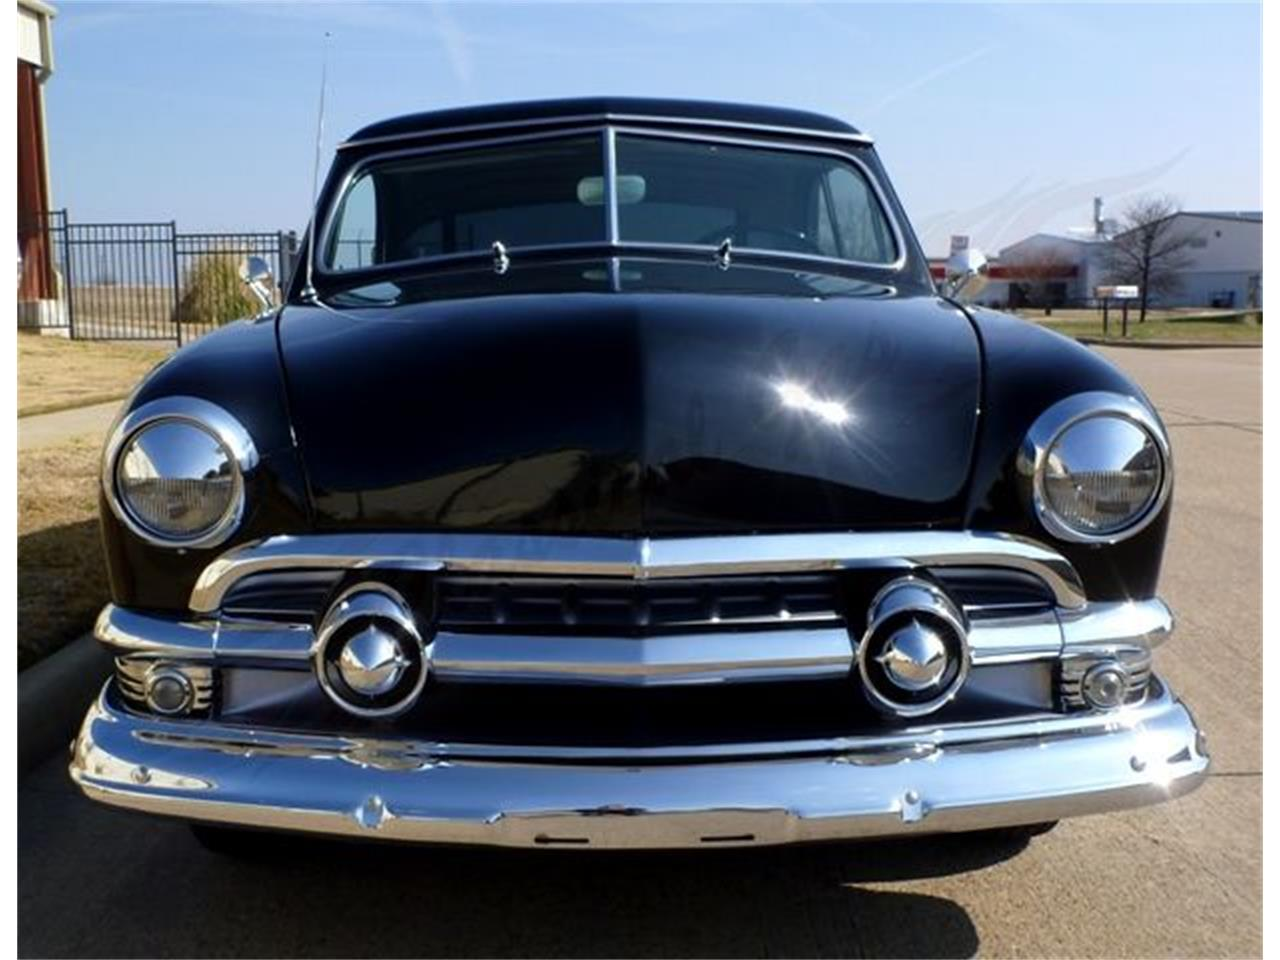 Large Picture of '51 Ford Victoria - $36,500.00 - KNMN